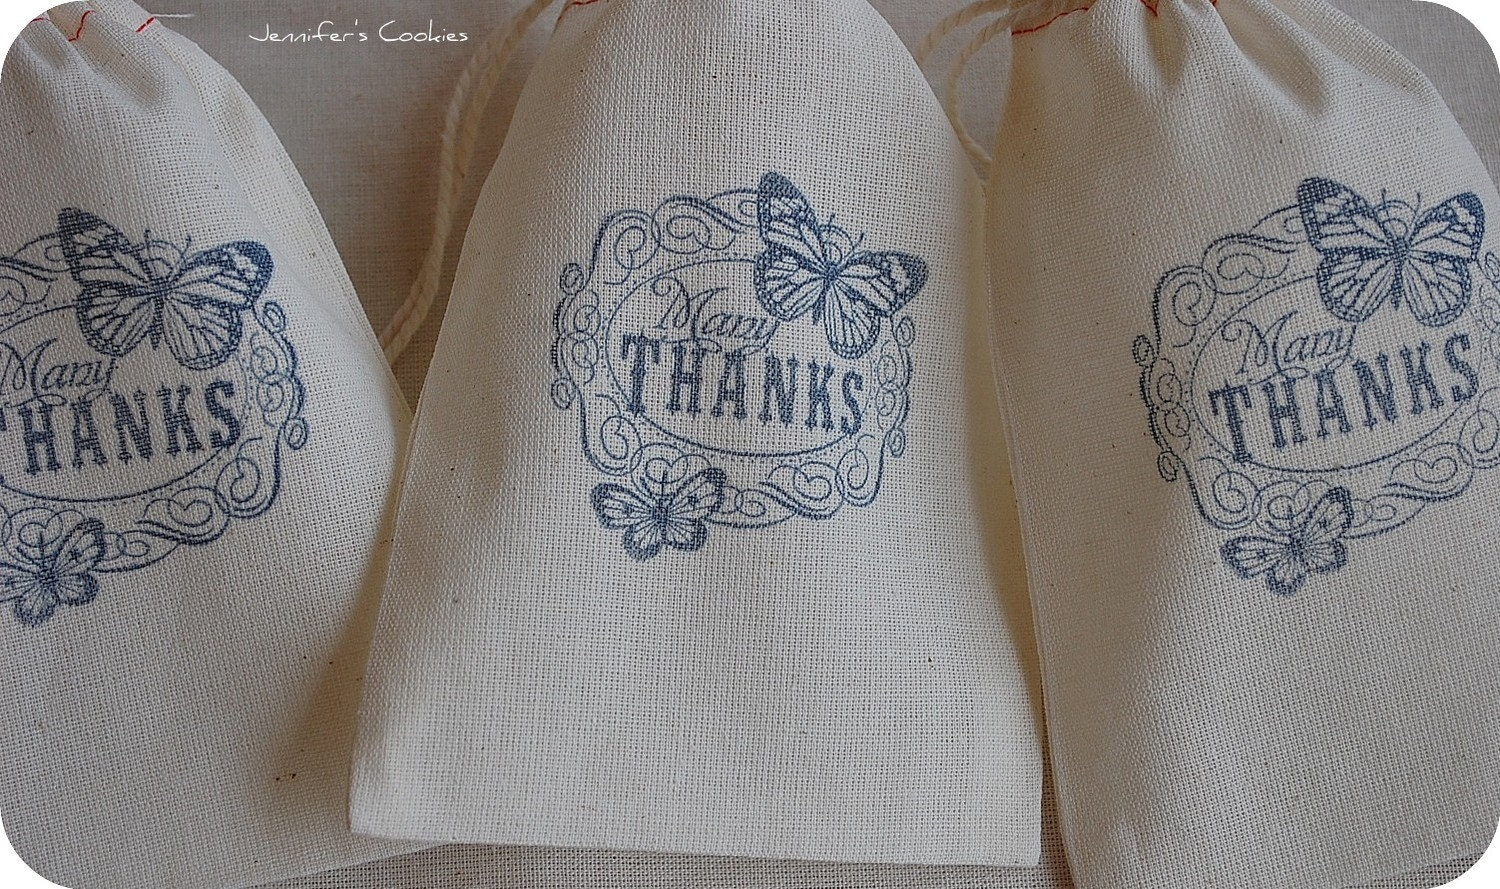 10 Blue Many Thanks with Butterfly Muslin Drawstring Favor Gift Bags 4x6